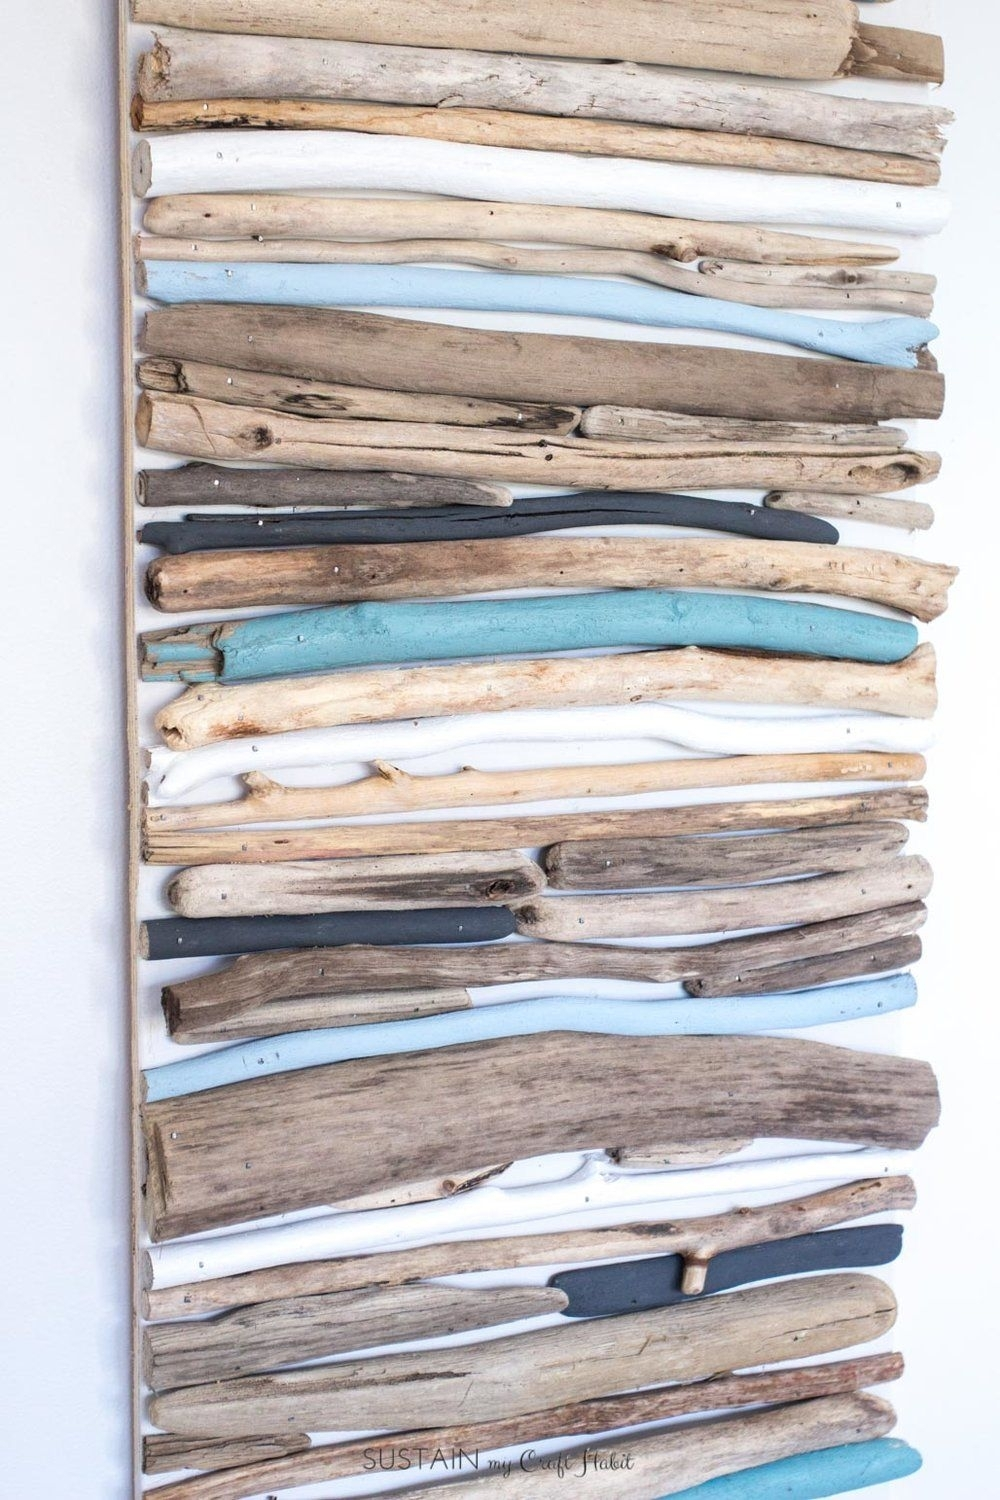 Diy Coastal Decor - Painted Driftwood Wall Art | Crafting Chicks for Driftwood Wall Art (Image 6 of 20)